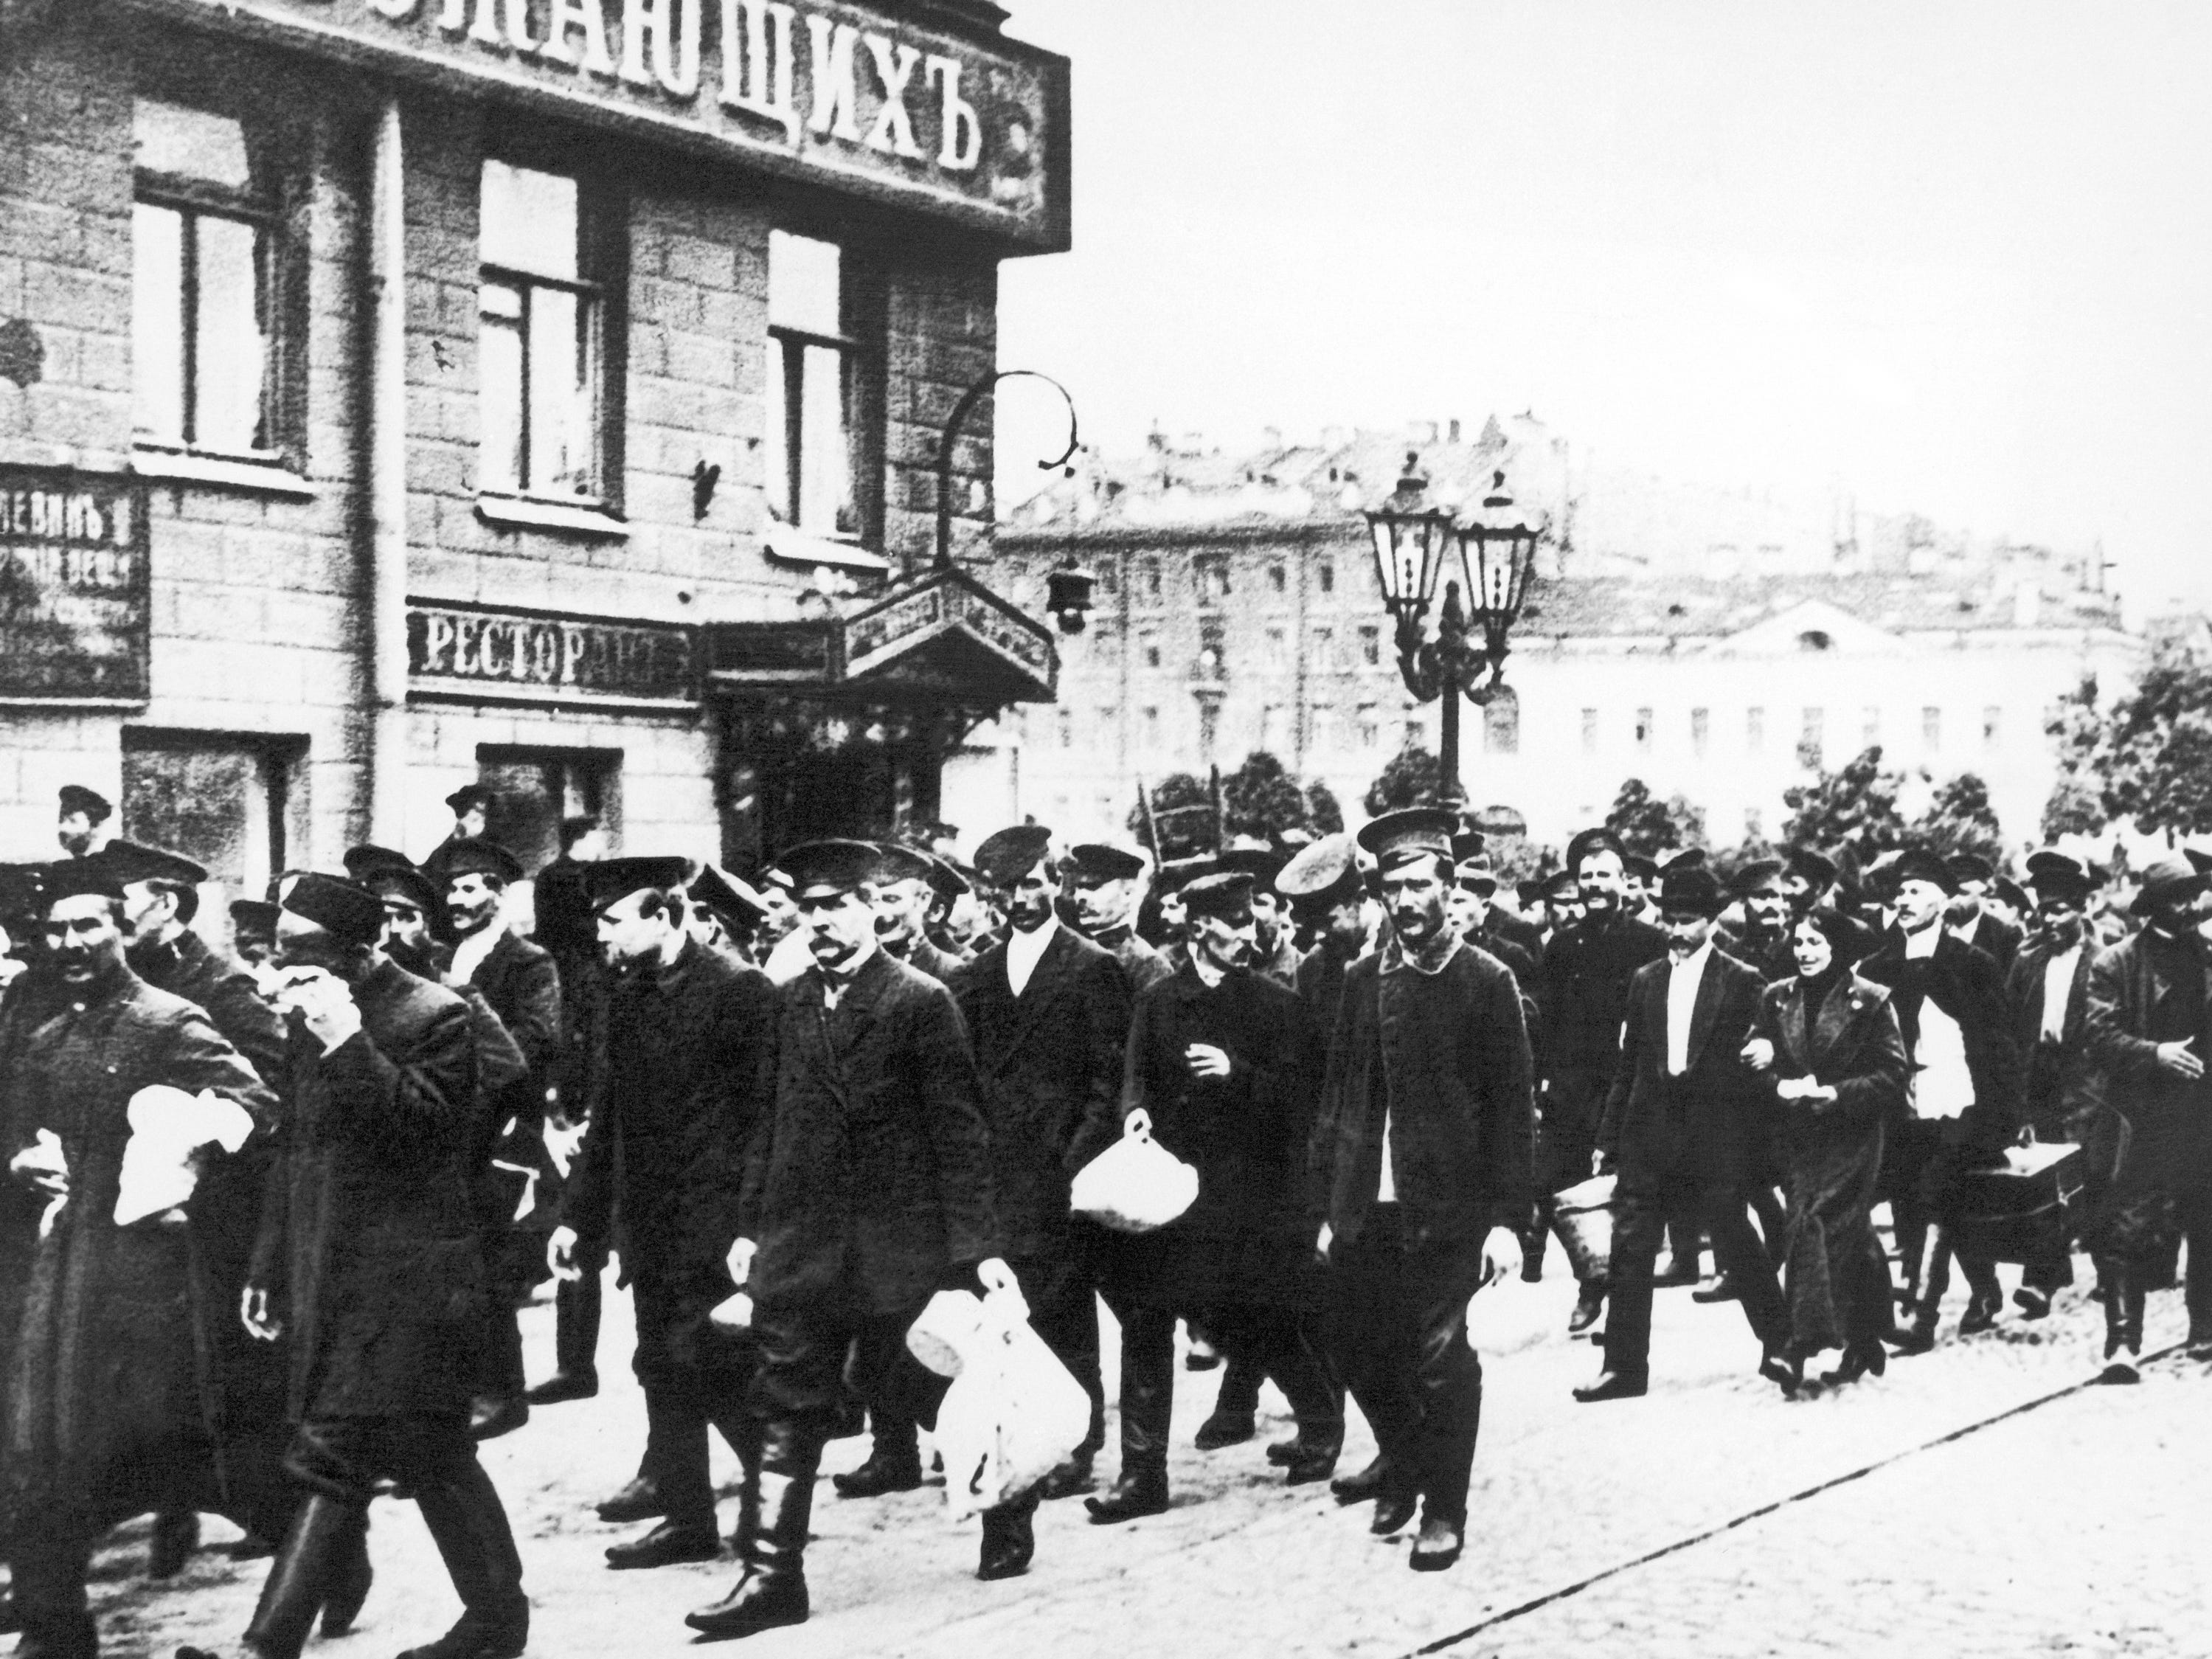 In this Aug. 8, 1914, photo, Russian reservists walk with their belongings in St. Petersburg, Russia. Russia entered World War I with a massive but badly armed army.